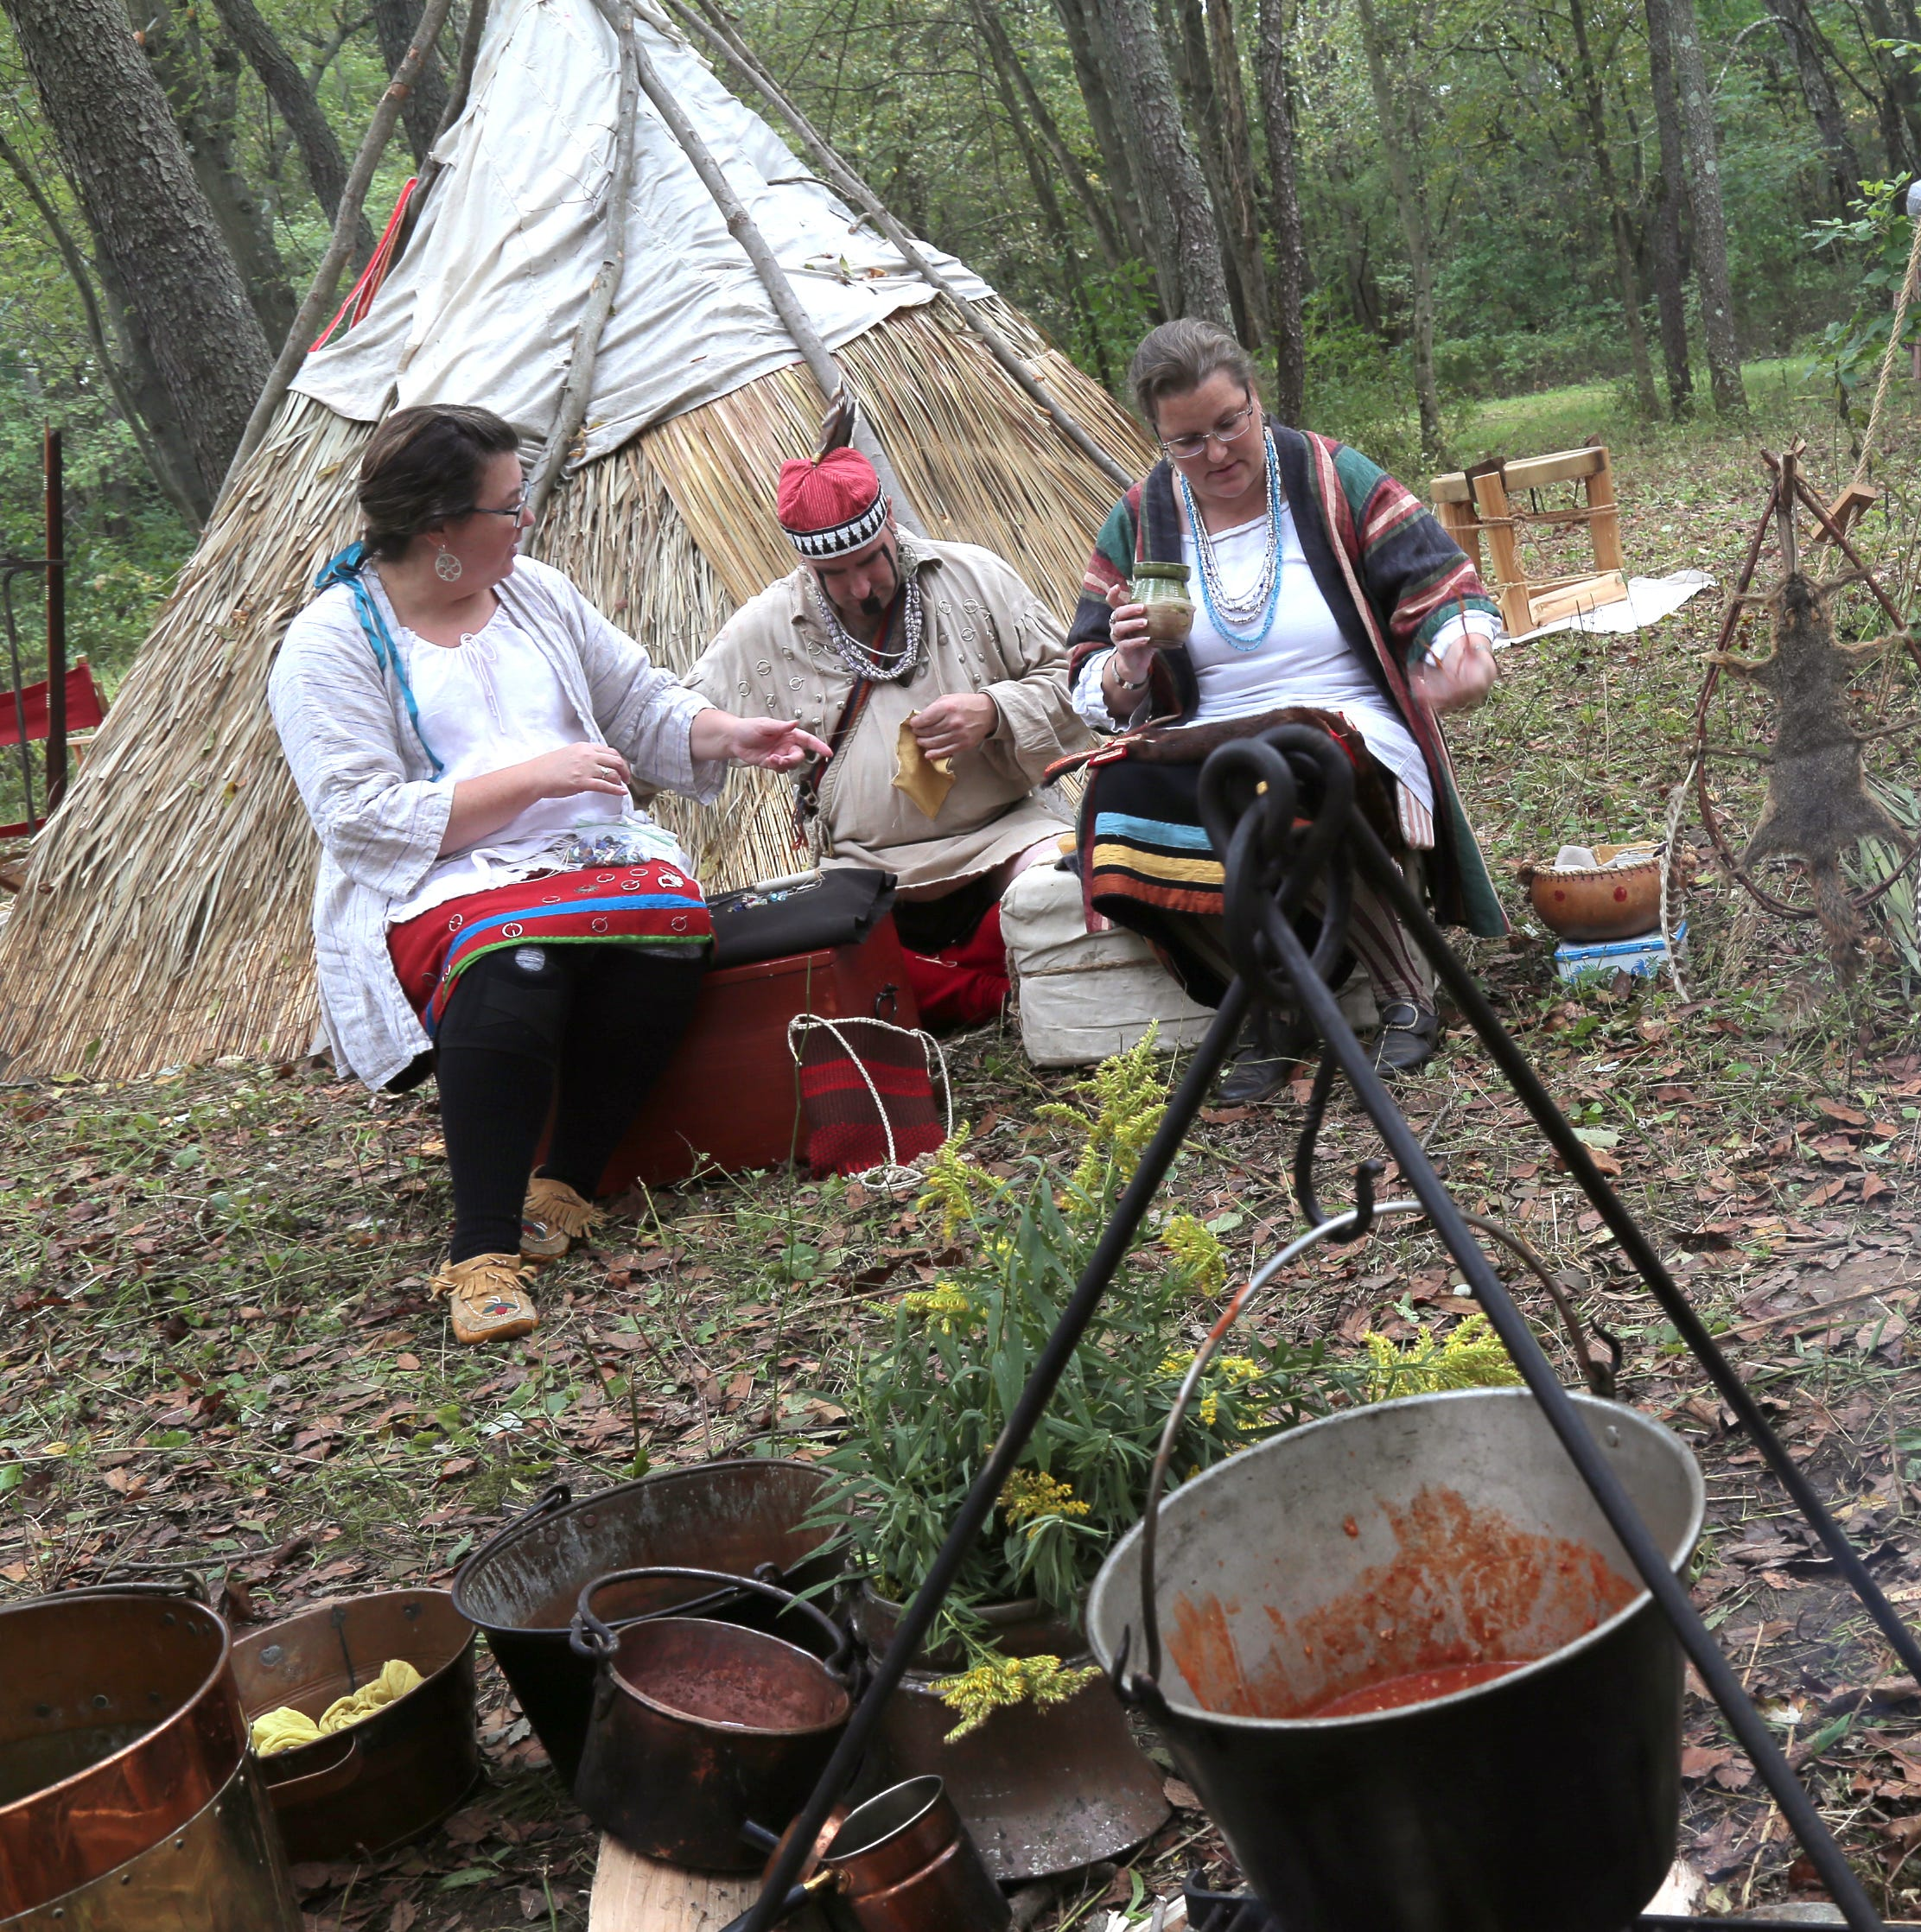 Gathering commemorates site of Delaware Indian village near Perrysville